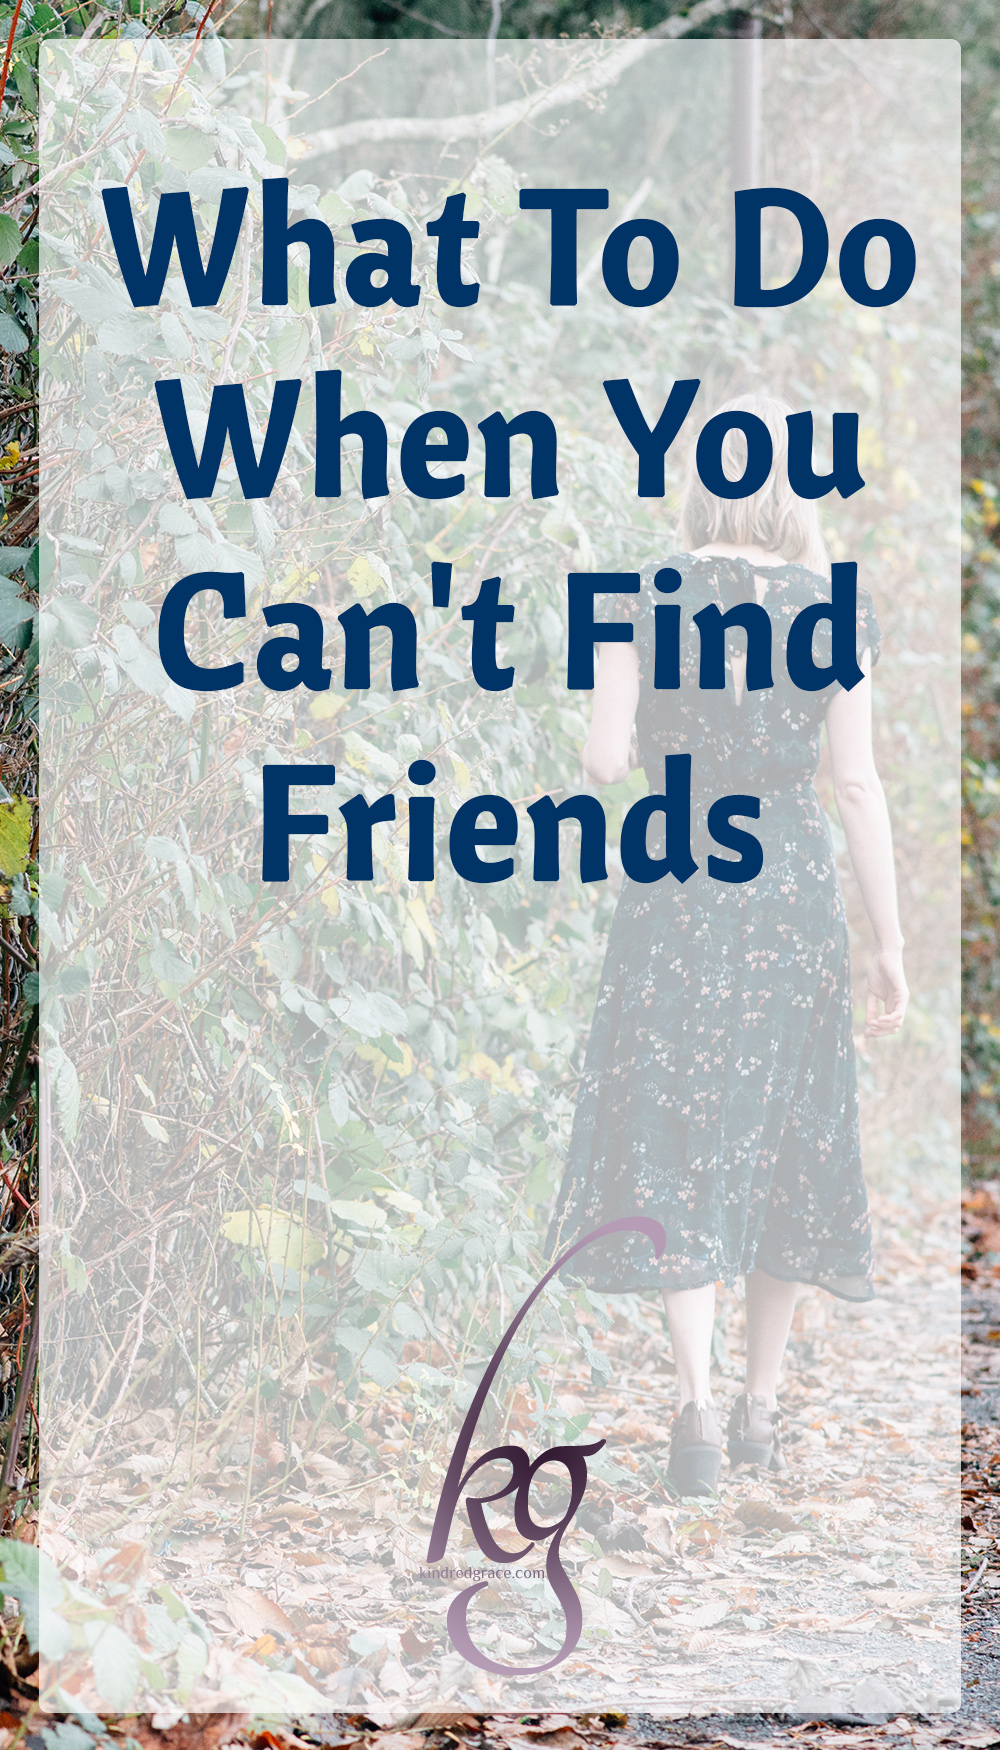 Sometimes, I gain new, amazing friends. But sometimes, I don't click with anyone despite my very best efforts, and find myself without any close, local friendships. And during these seasons, there are eight truths and tips I keep returning to, and needing to etch afresh onto my own soul. via @KindredGrace